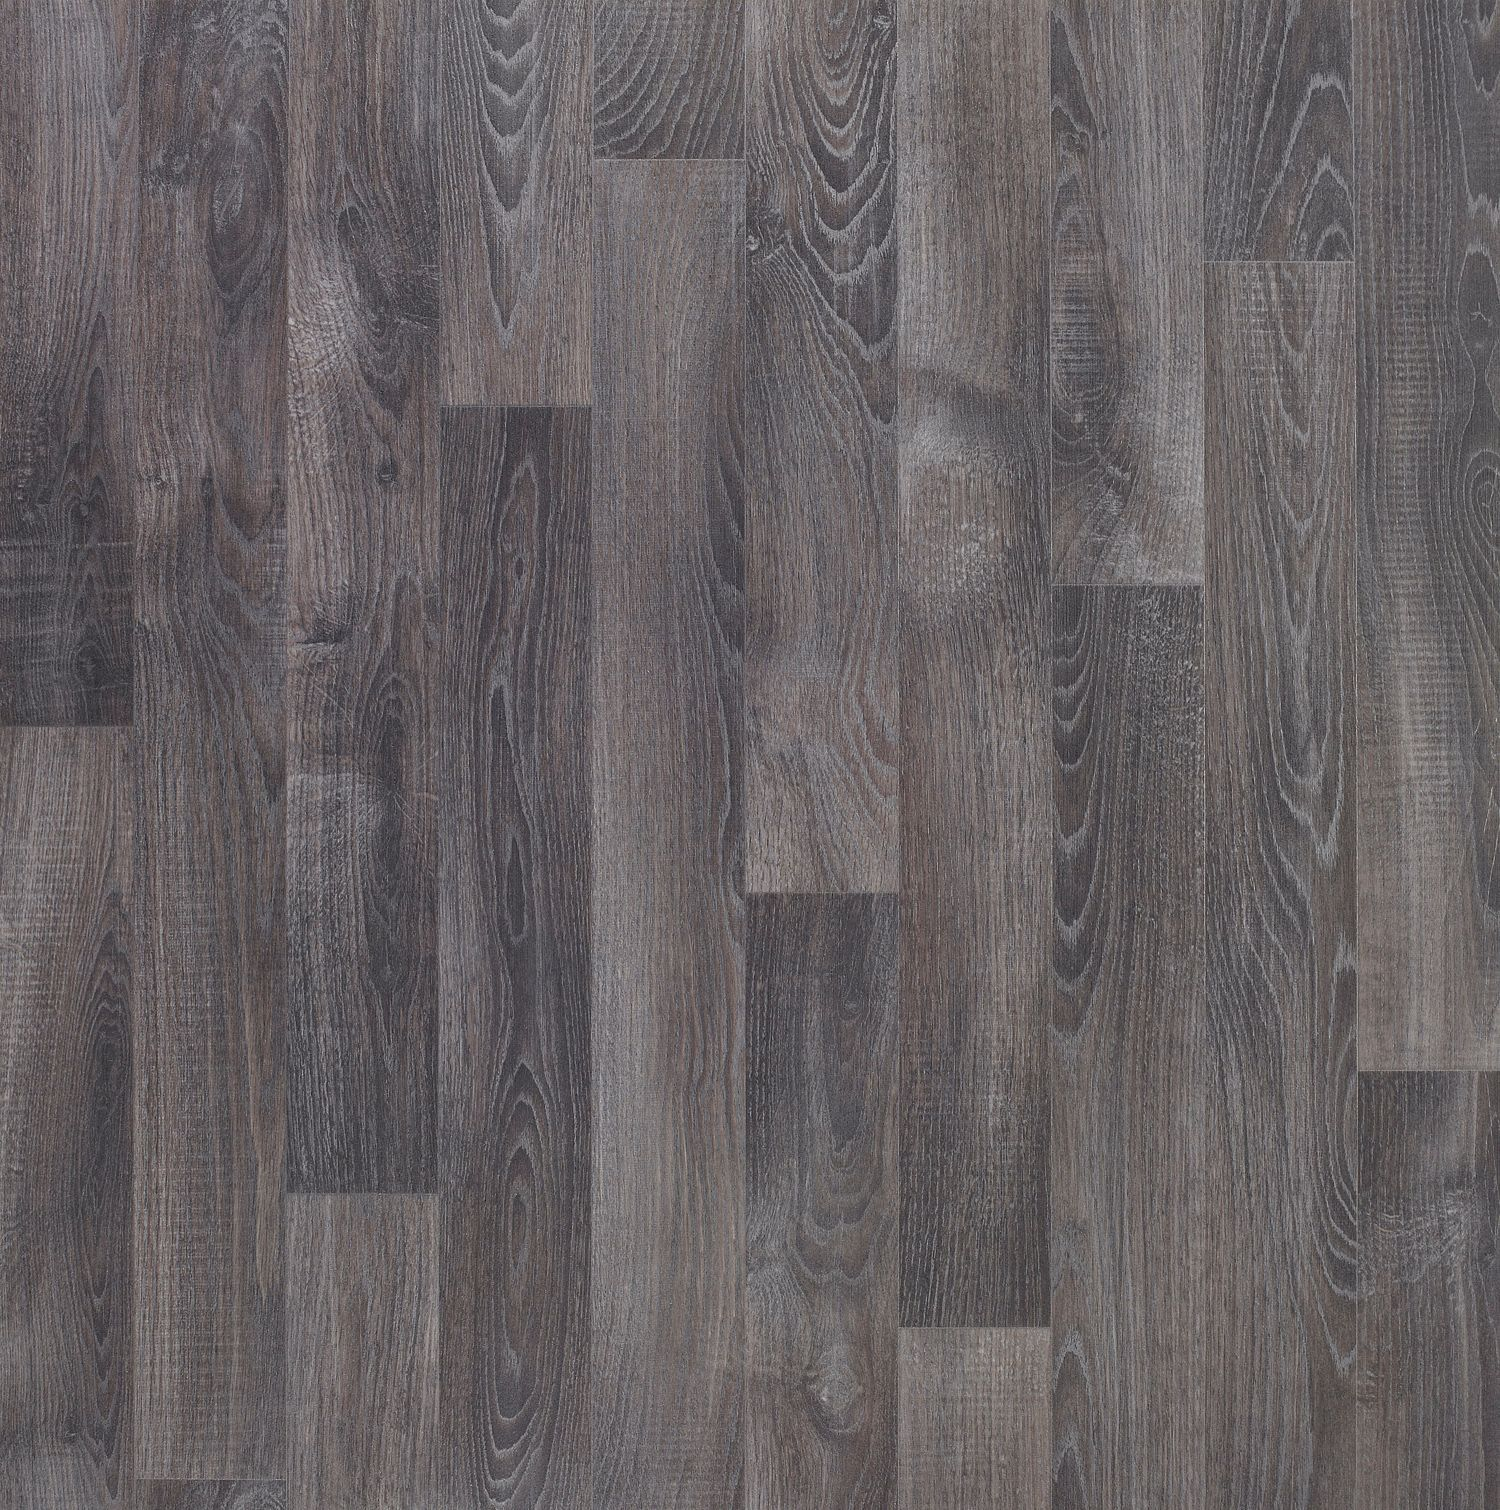 Exceptional Dark Grey Oak Effect Vinyl Flooring 4 M²